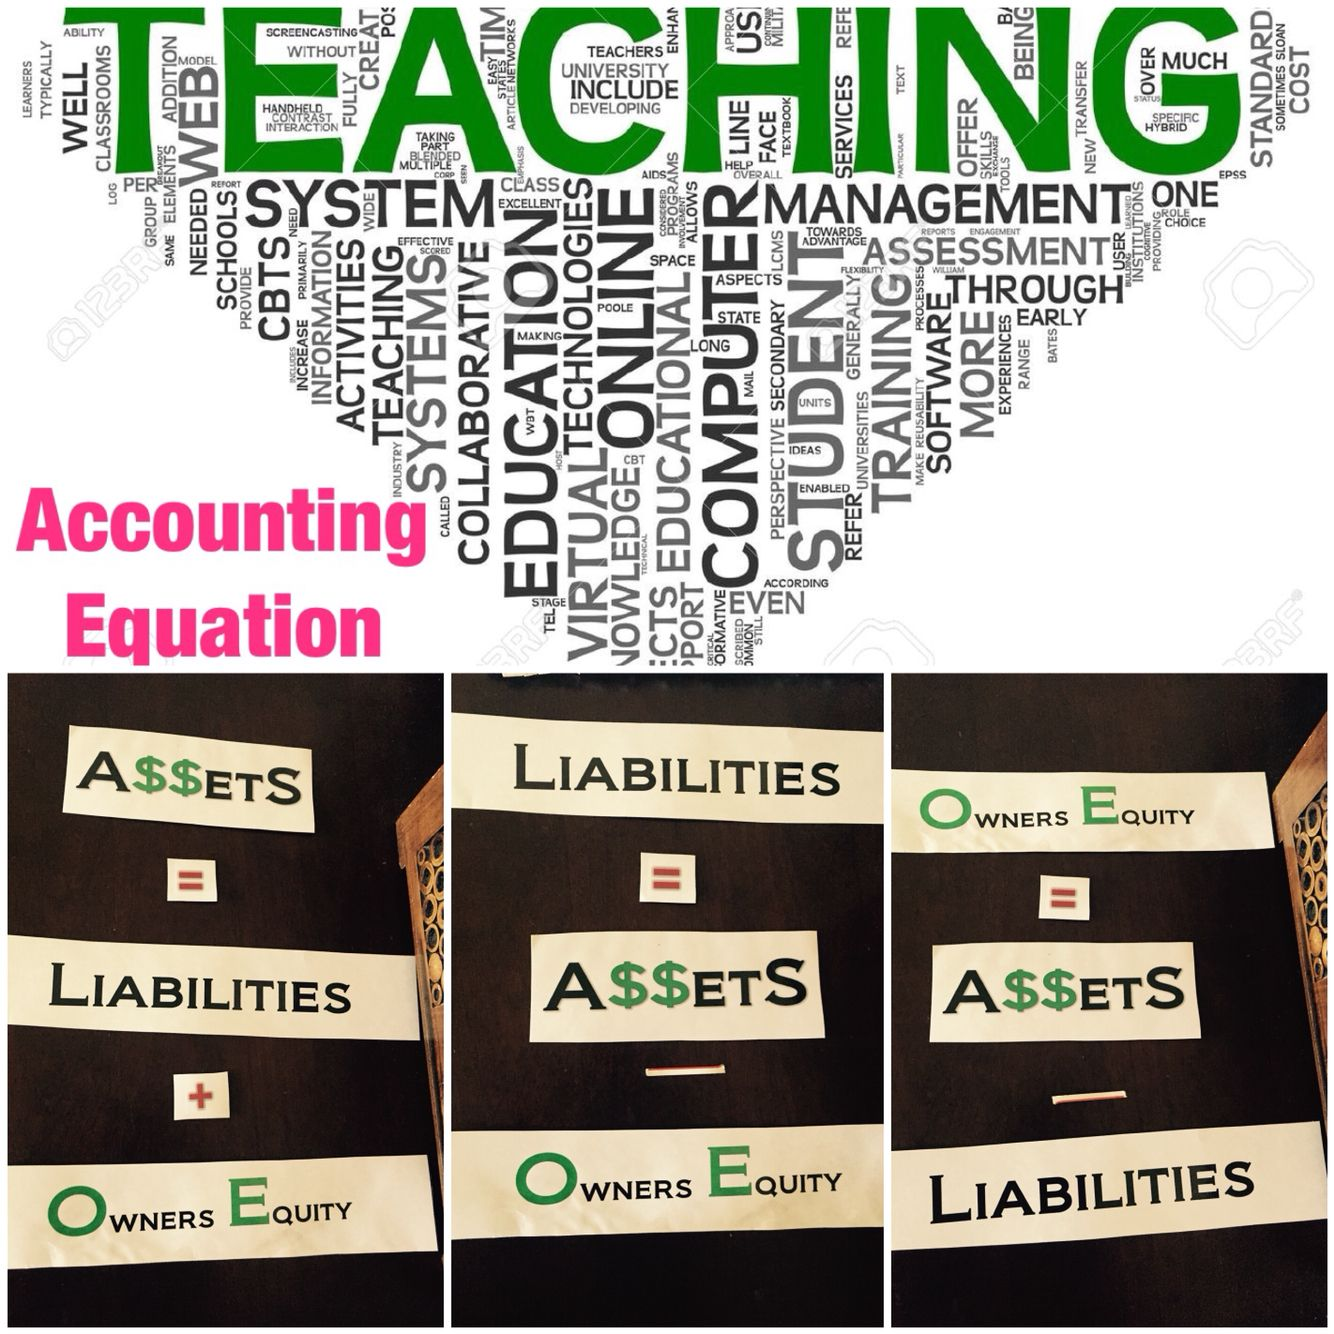 Fun Way To Teach The Accounting Equation To High School